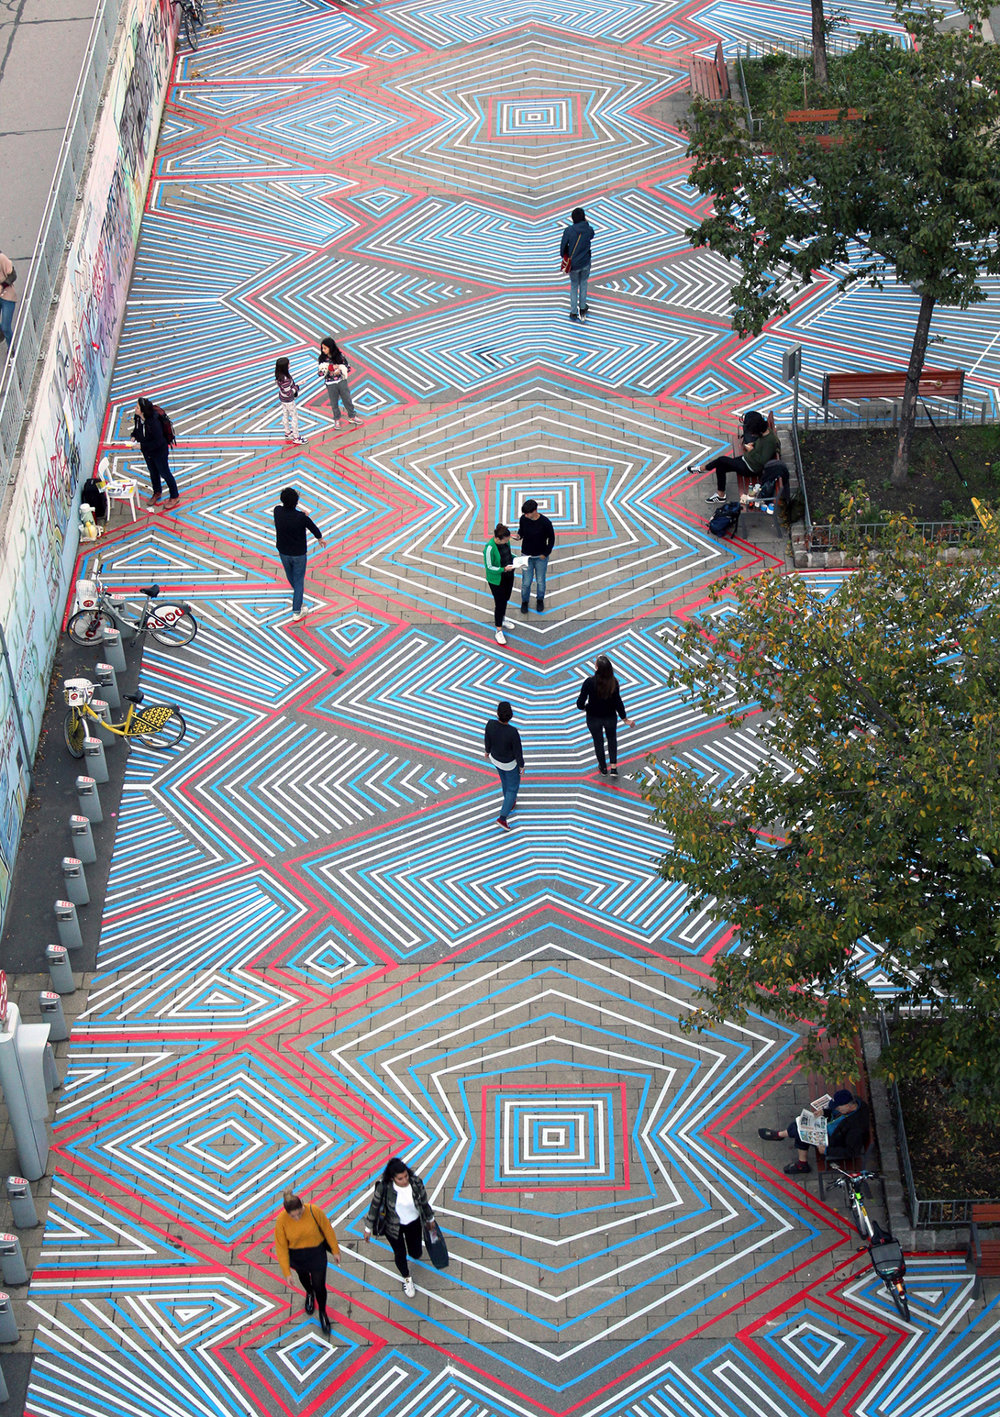 ECOL-DrawingPublicSpace-Topview_1250.jpg